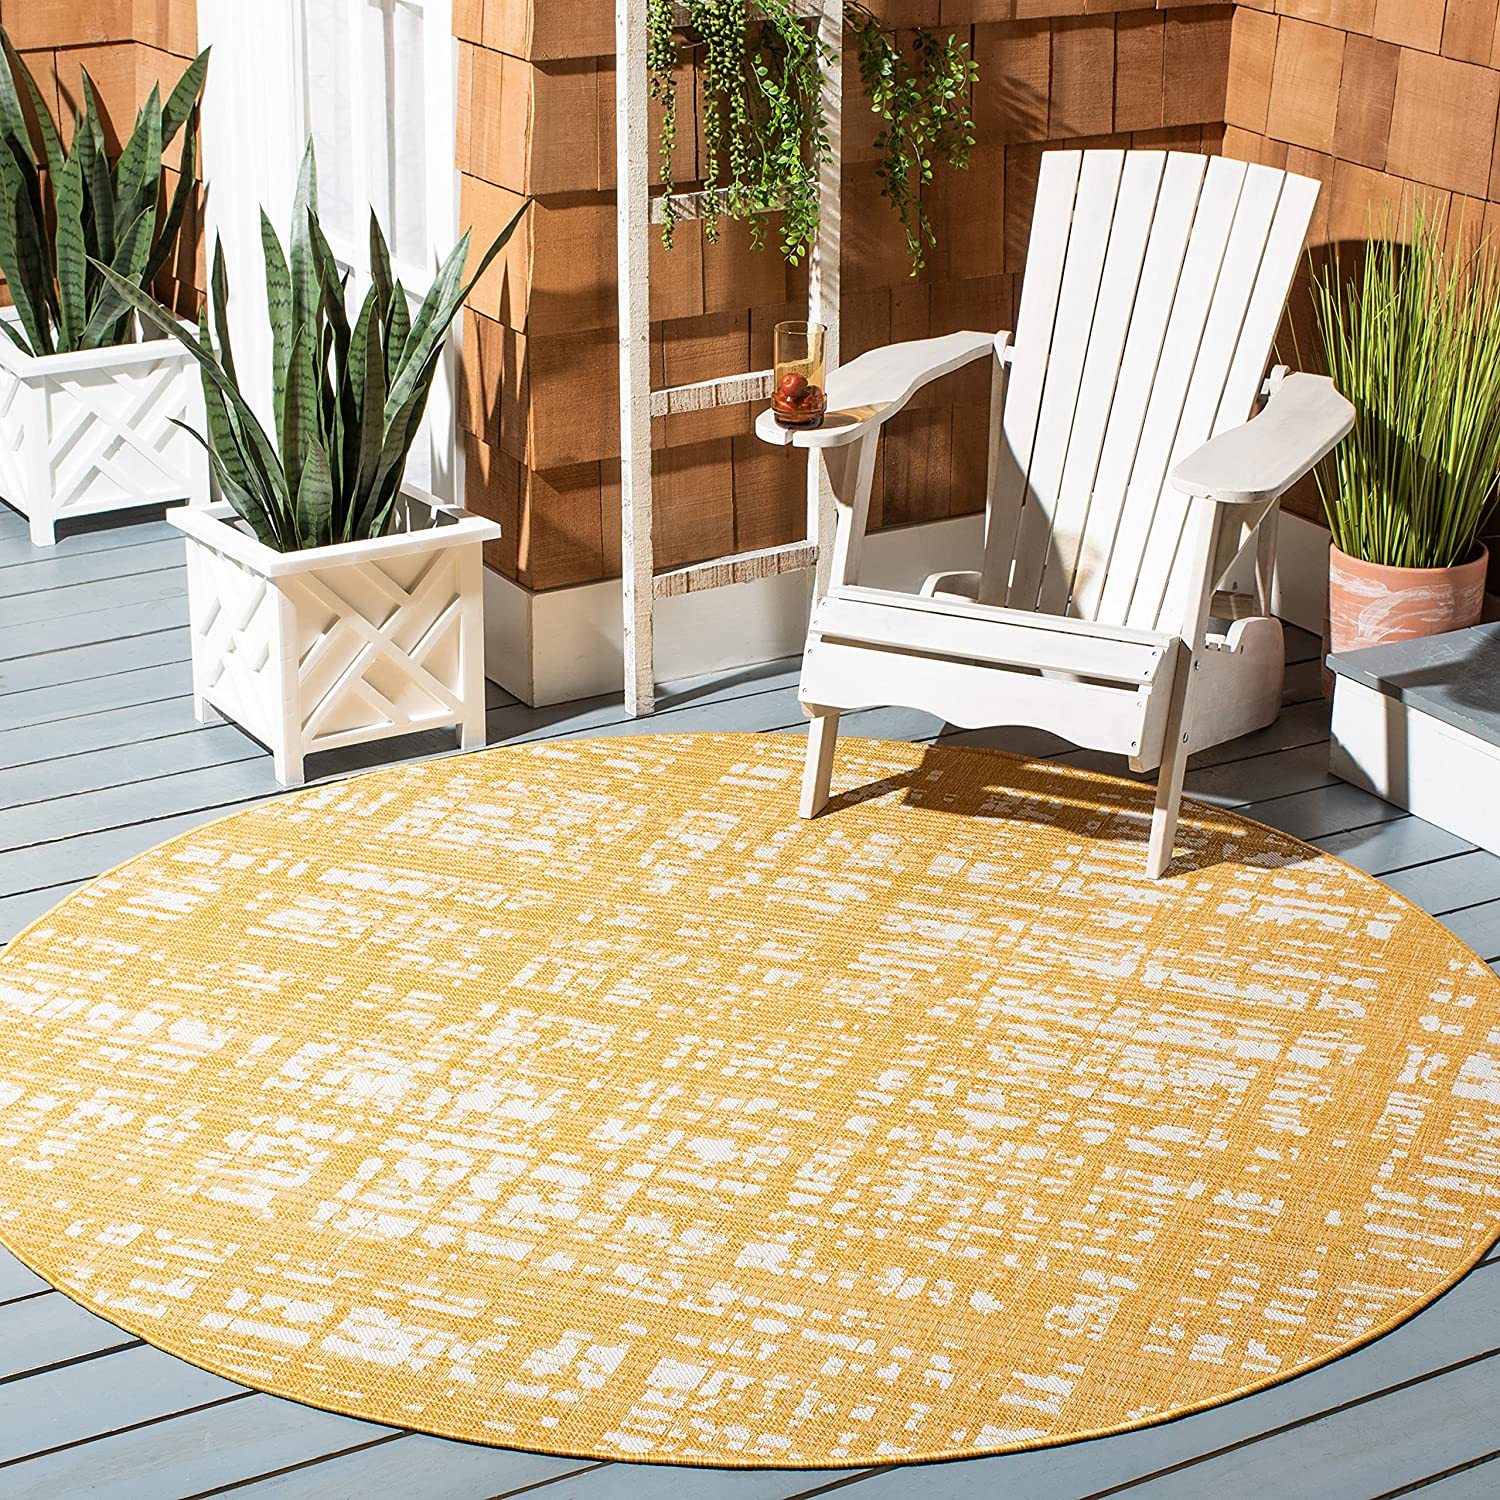 Safavieh Free shipping anywhere in the nation Courtyard Collection CY8451 Non-Sheddin Outdoor Year-end gift Indoor